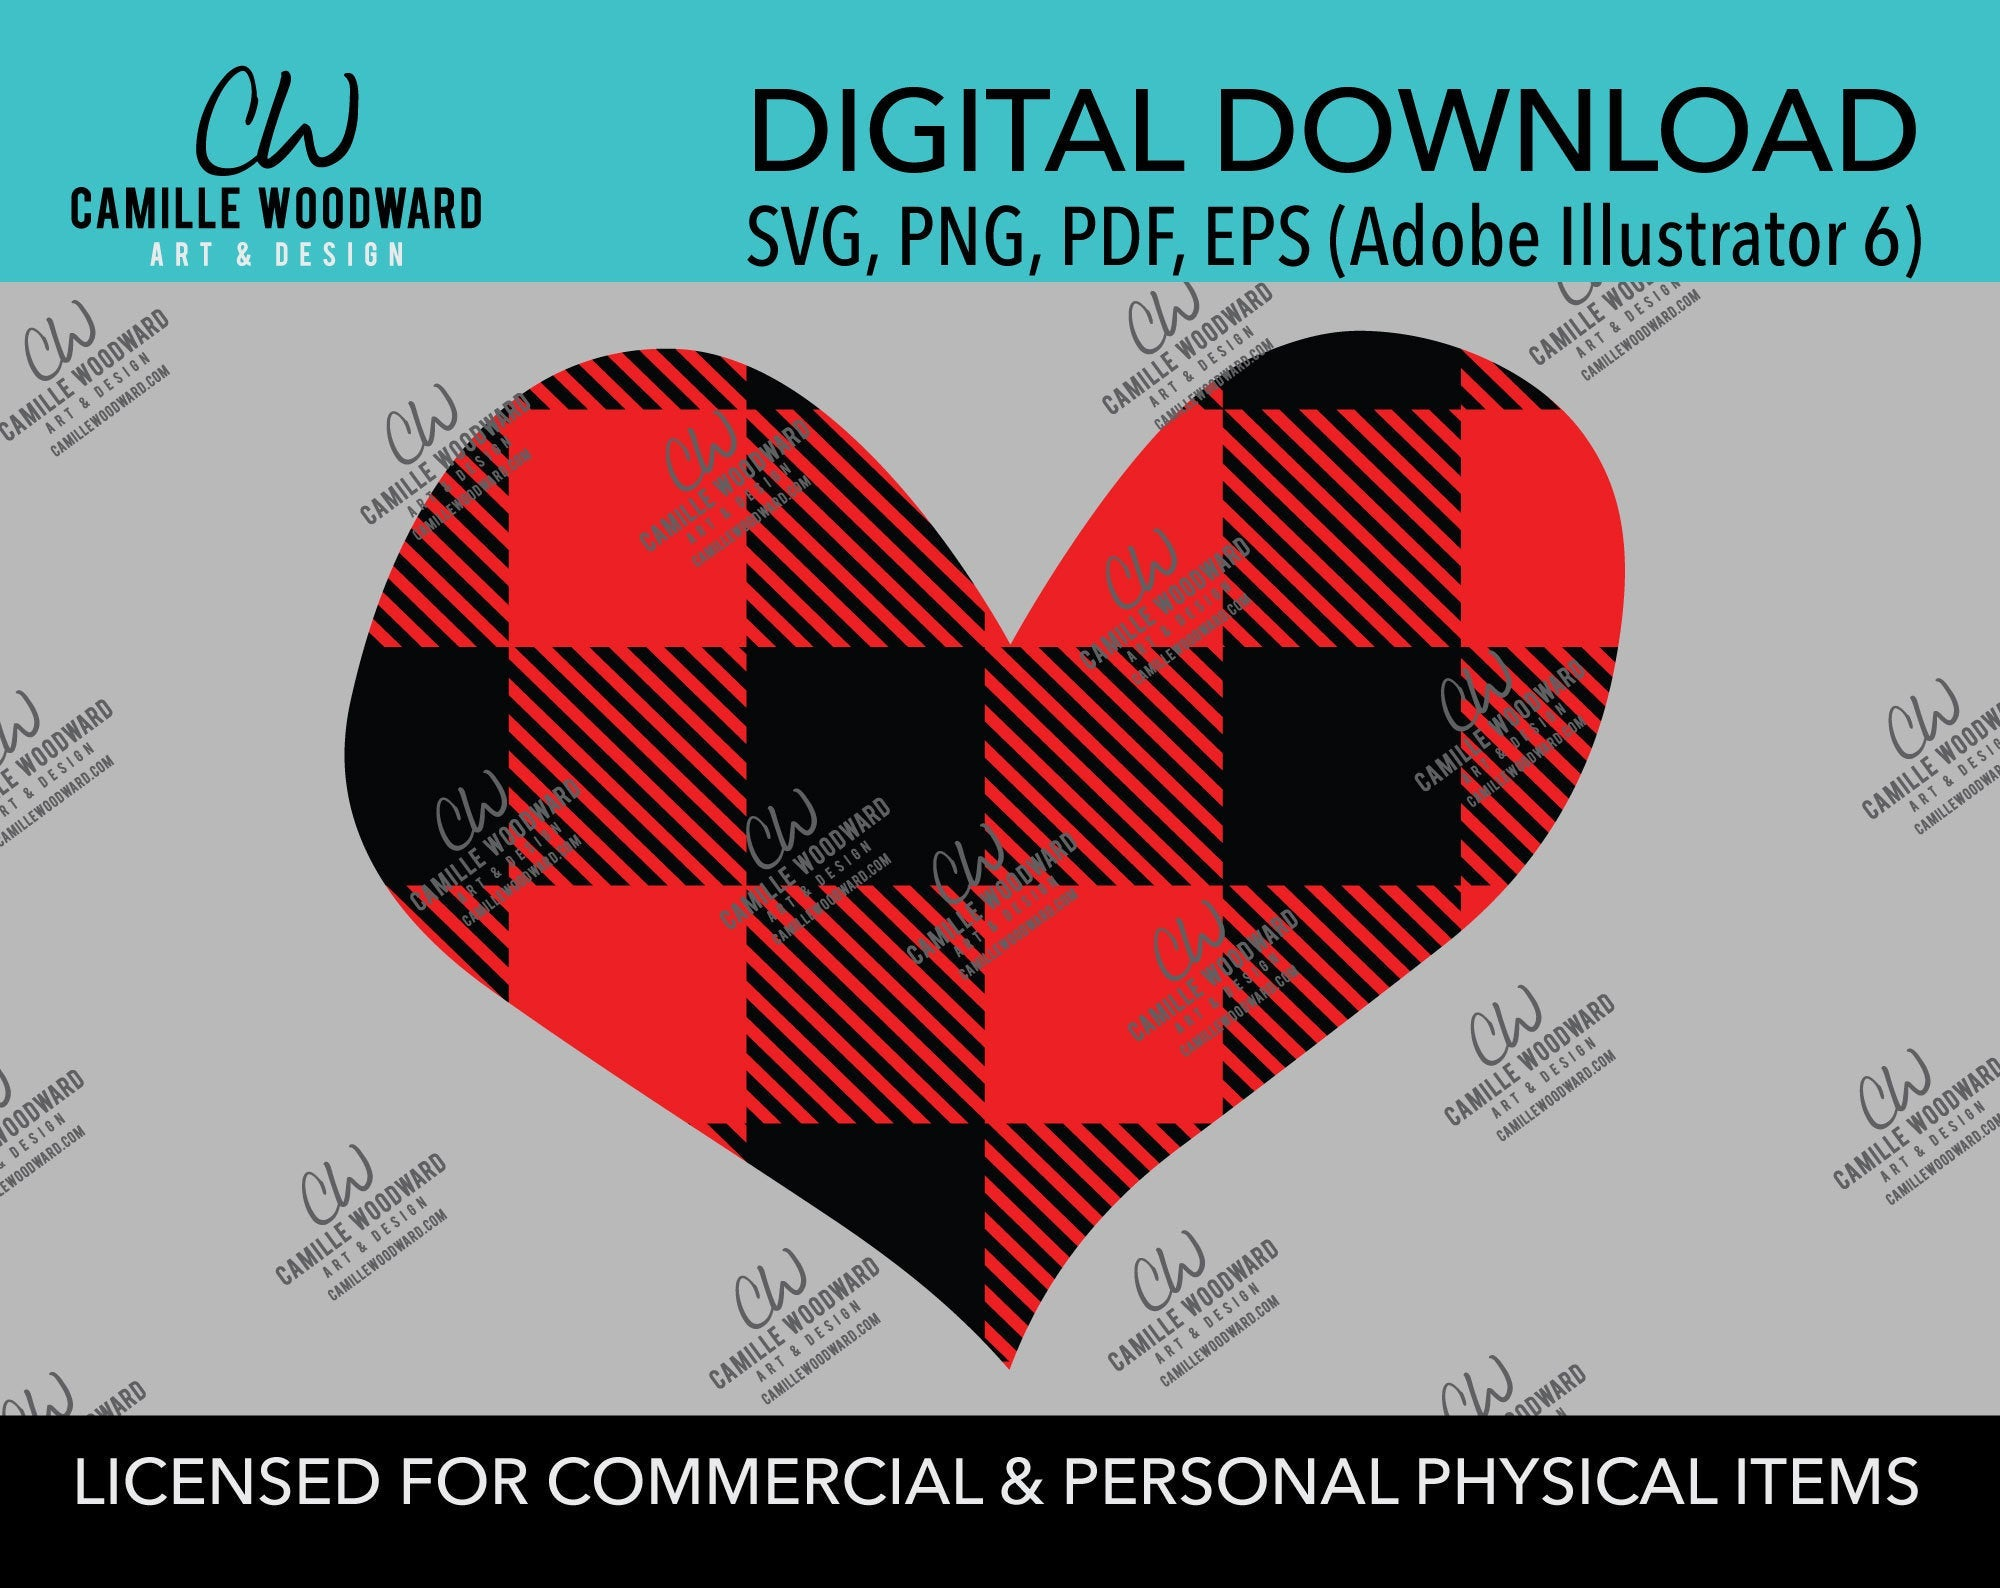 Buffalo Plaid Heart Red Black No Outline, SVG, EPS, PNG - Sublimation Digital Download Transparent